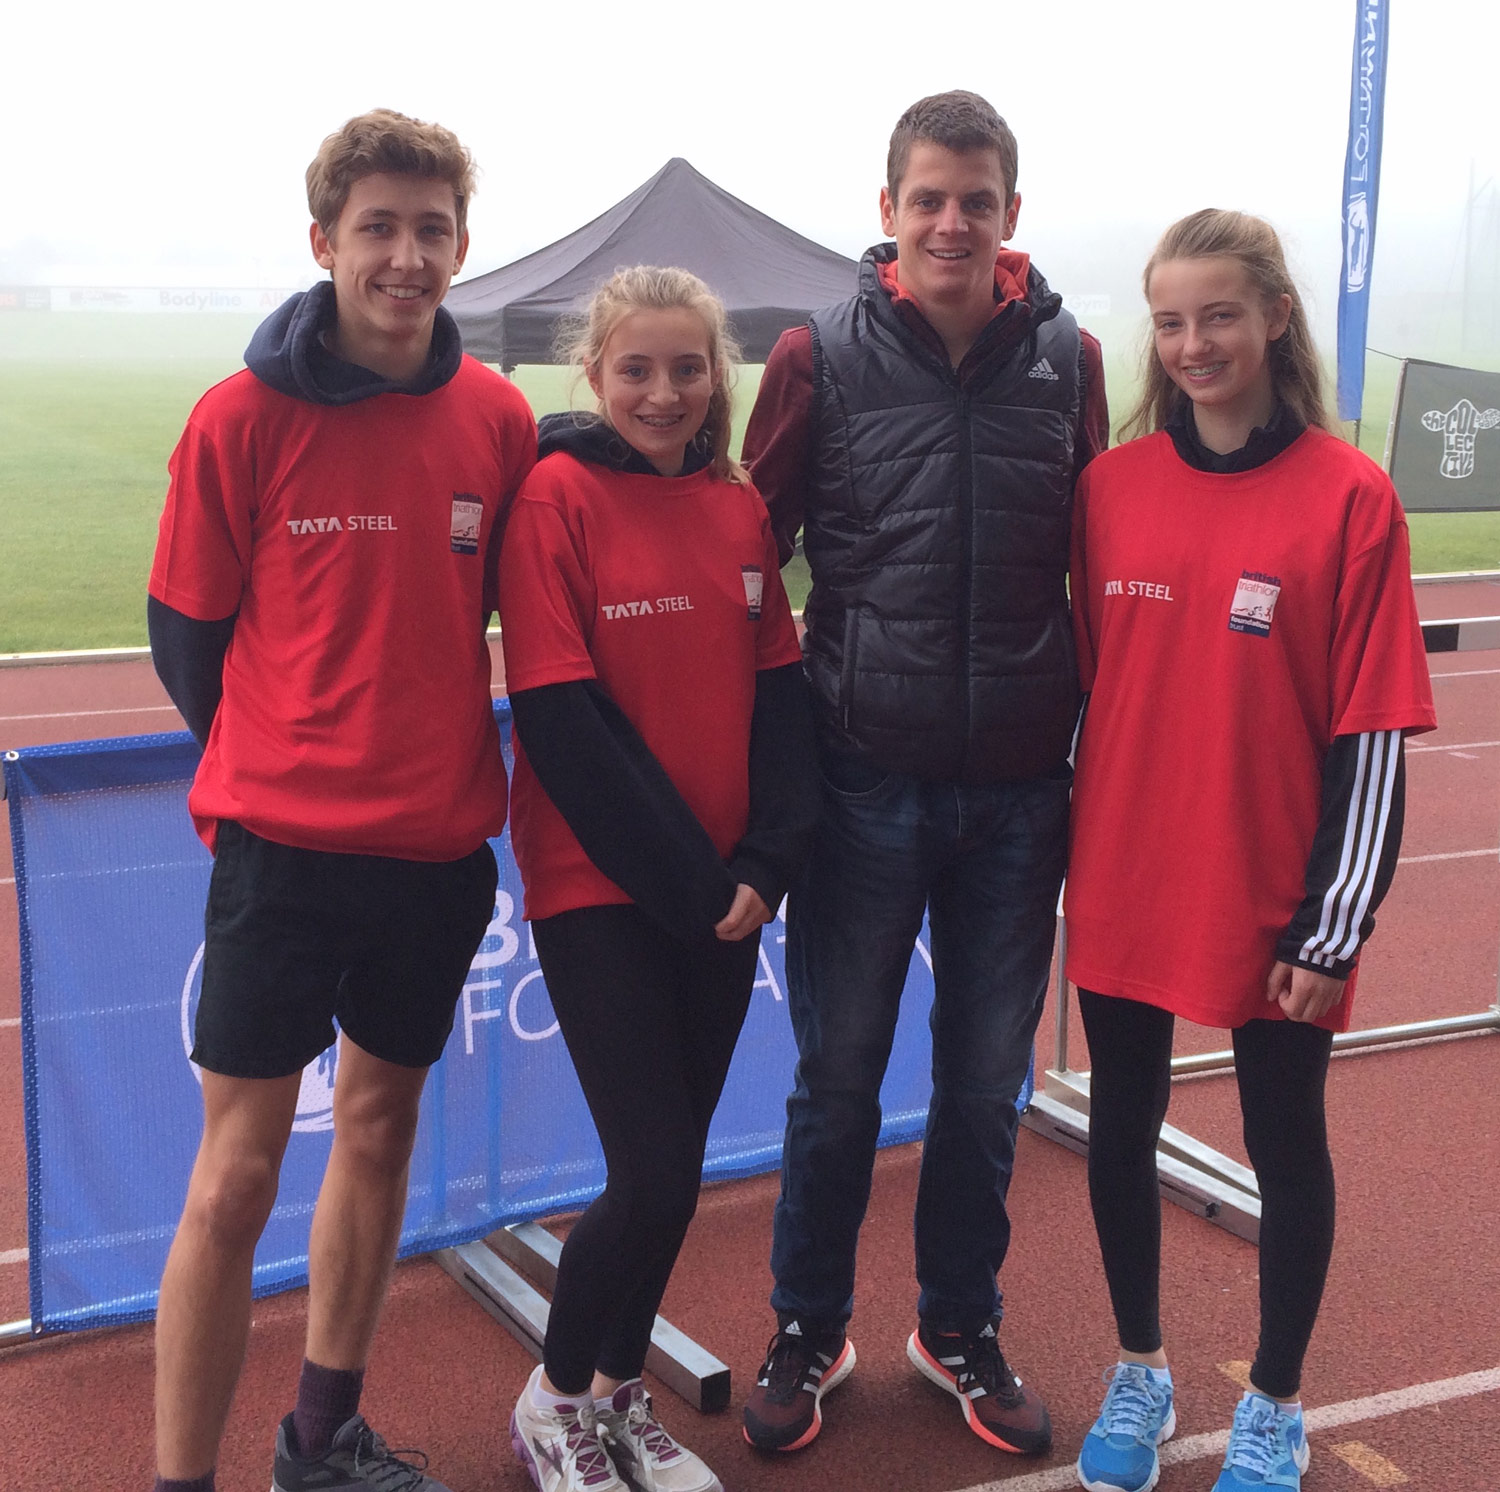 Photo: LEFT TO RIGHT: Kieran Roebuck, Orla Turnbull, Jonny Brownlee and Lily Greenhalgh